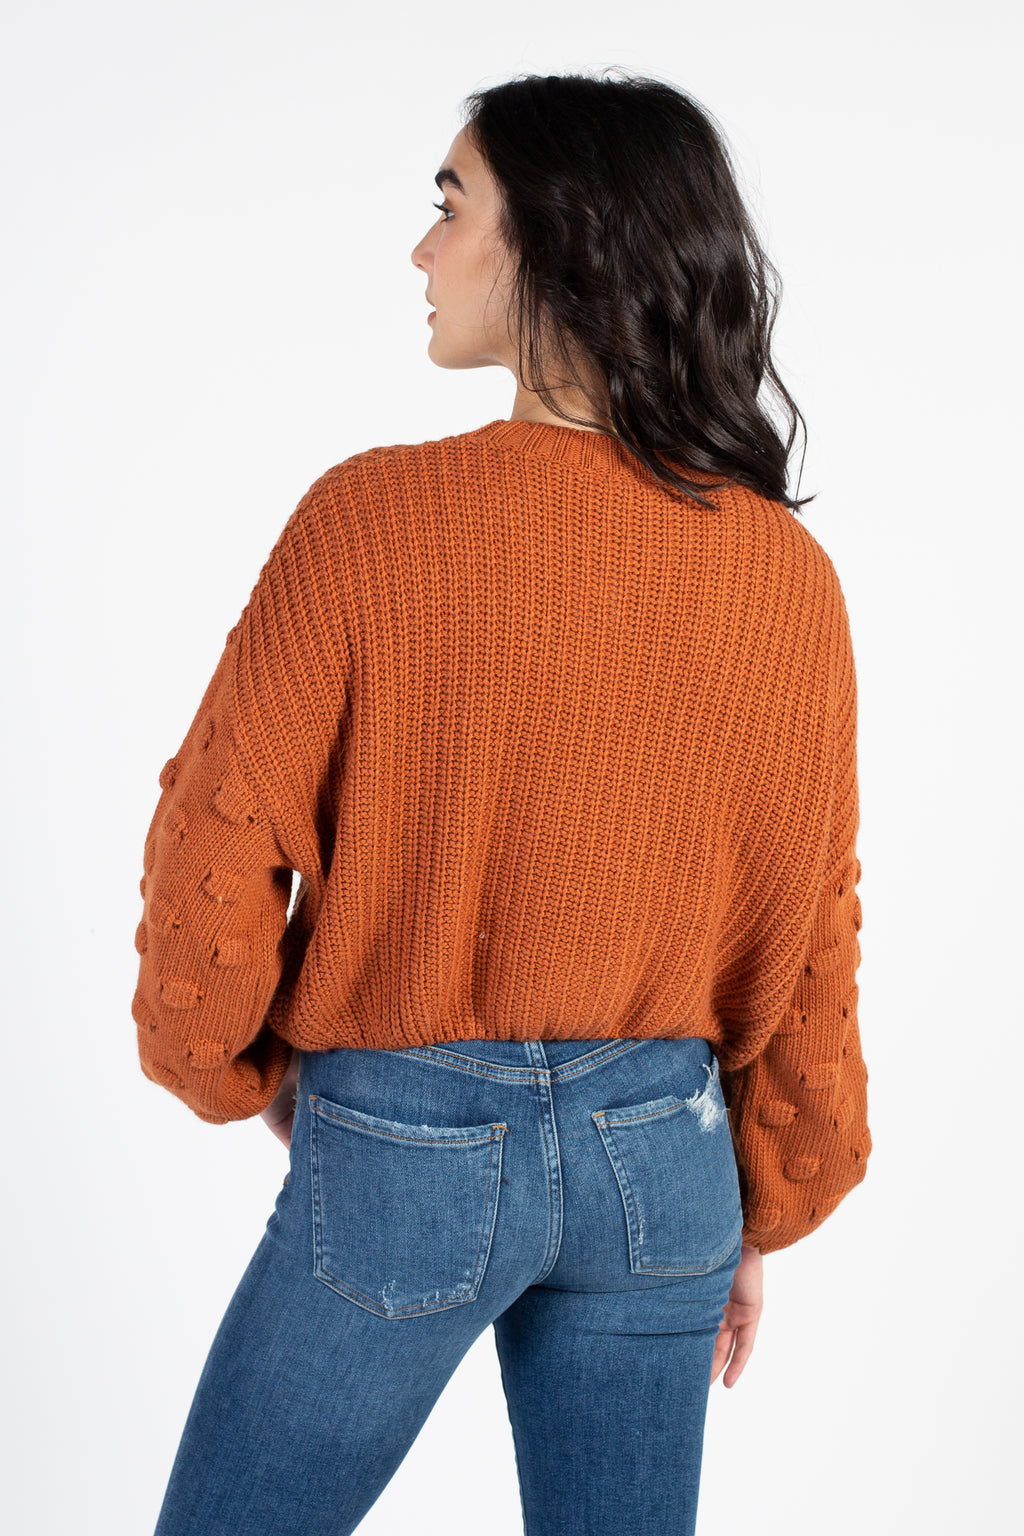 Ali Cropped Textured Sleeve Sweater - honey